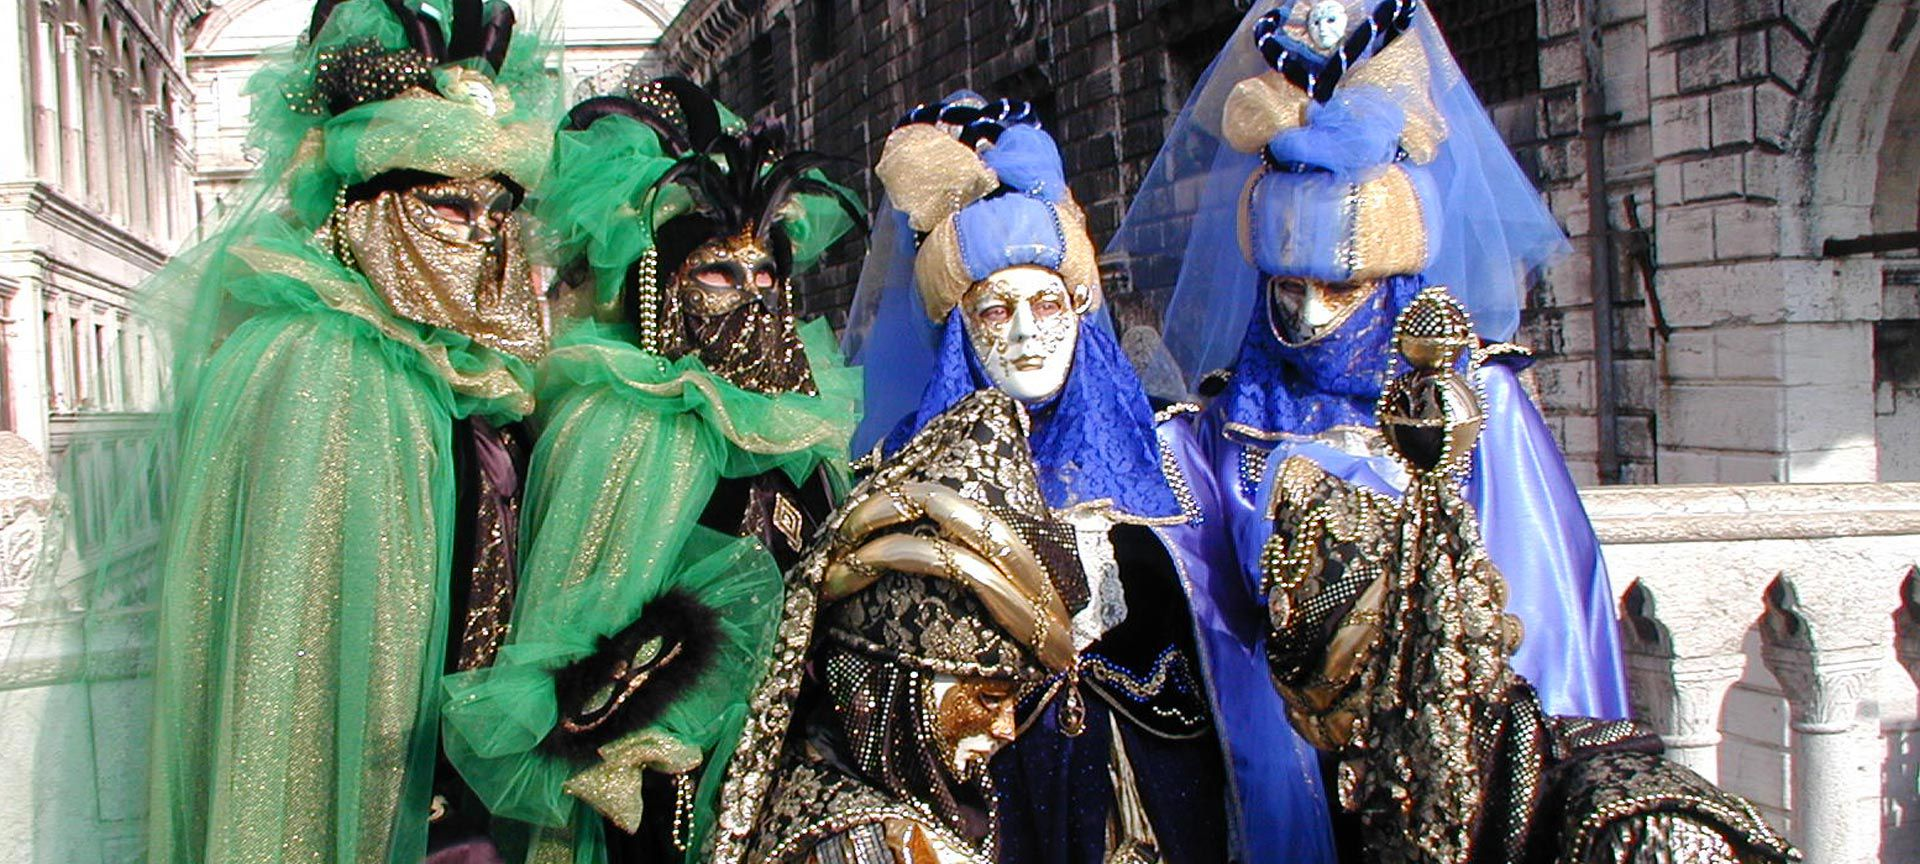 Traditional Carnivale costumes of Venice